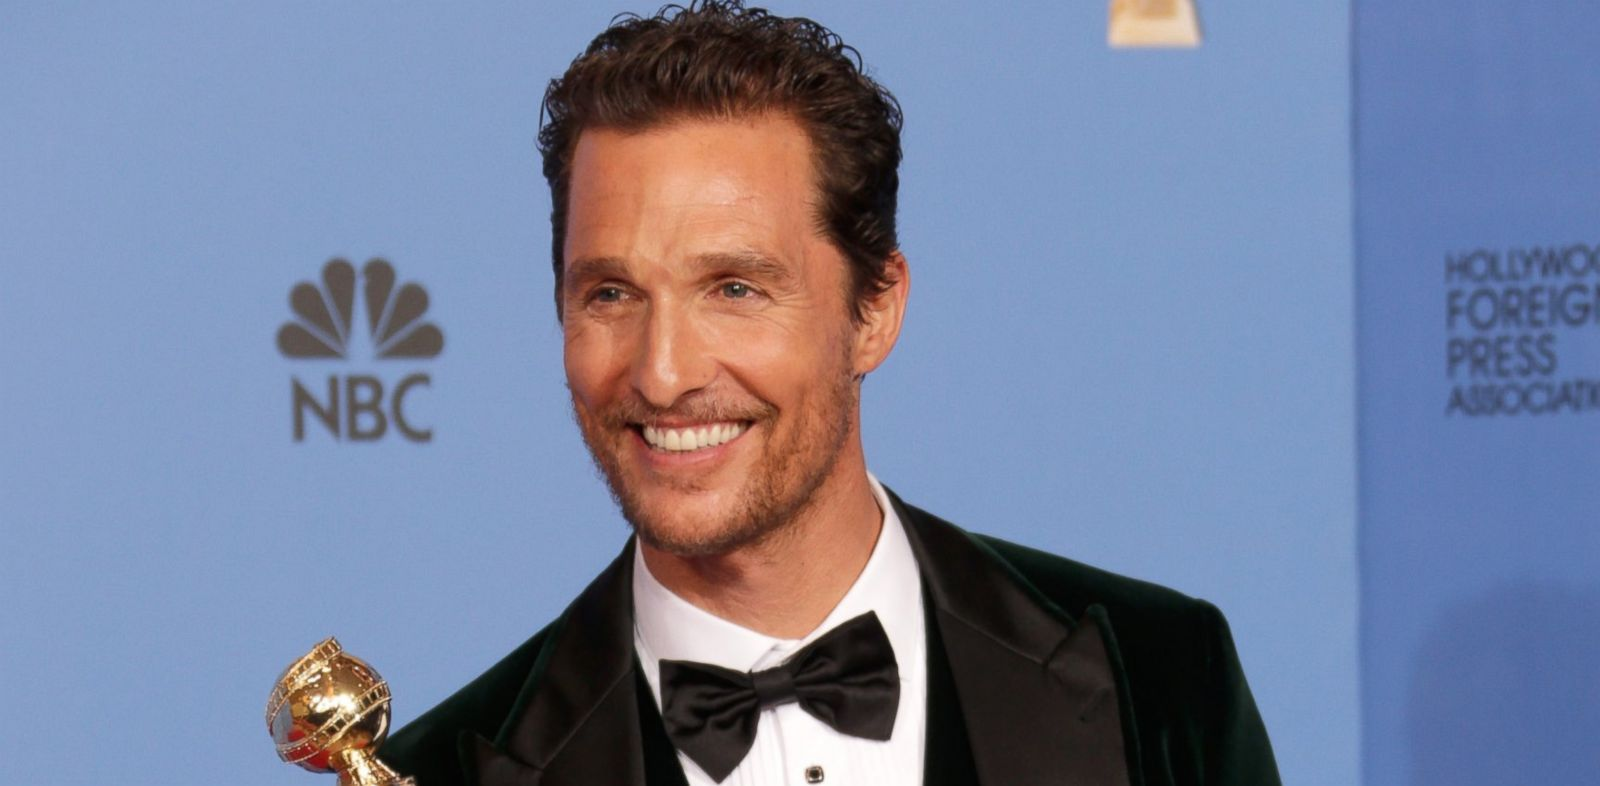 PHOTO: Matthew McConaughey is pictured during the 71st Annual Golden Globe Awards held at the Beverly Hilton Hotel on Jan. 12, 2014 in Beverly Hills, Calif.